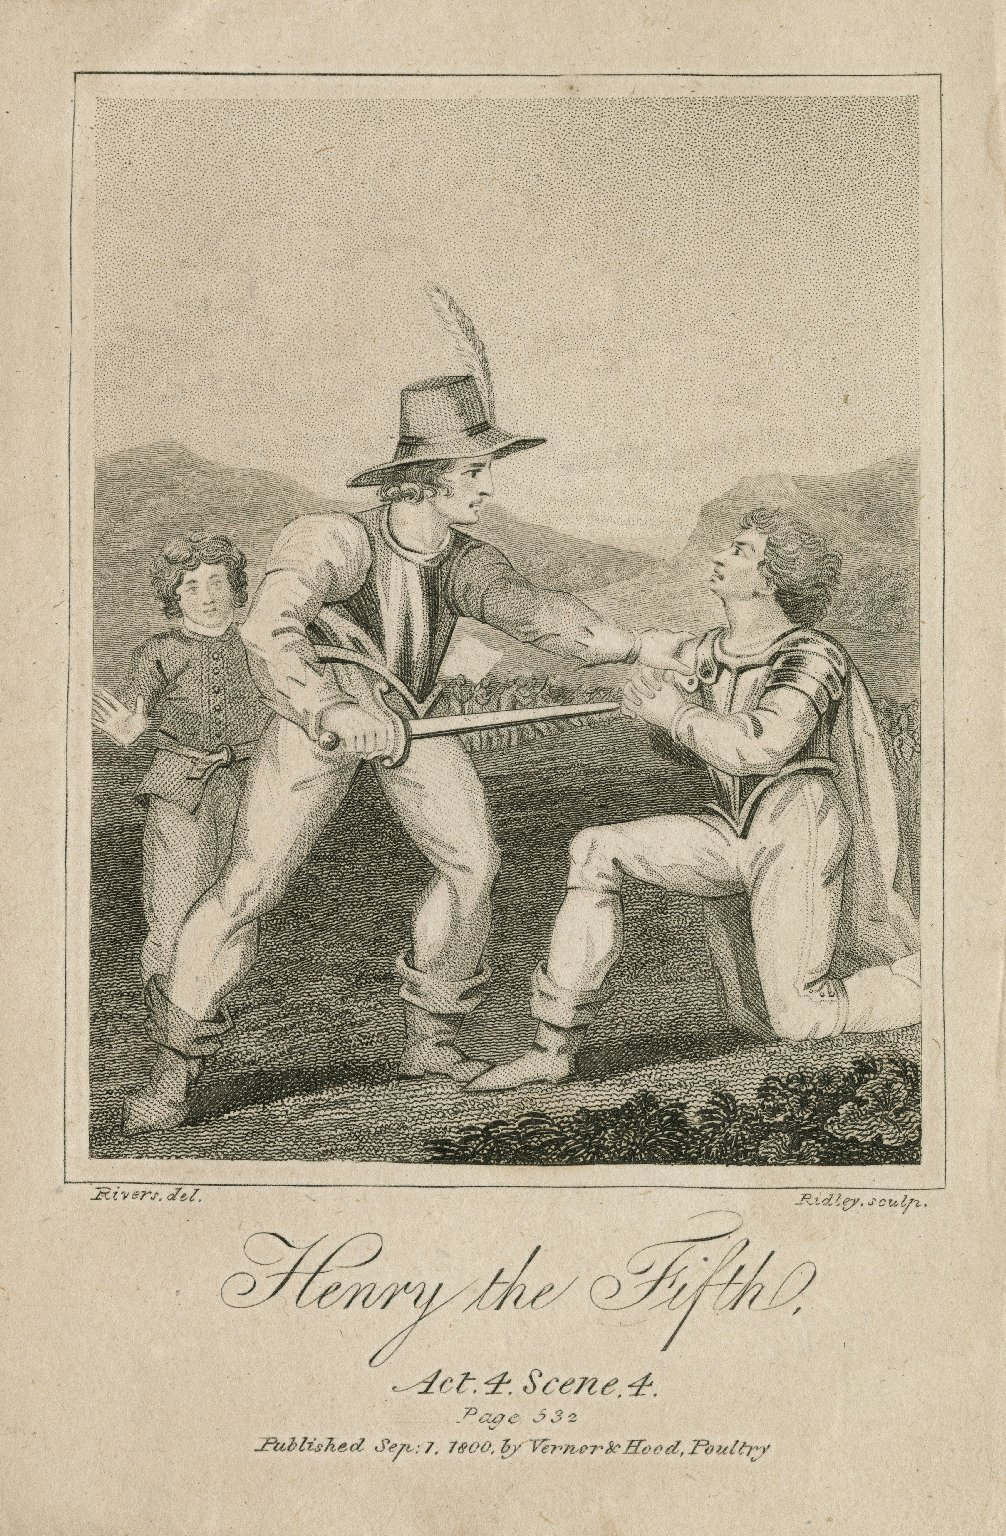 Henry the Fifth, act 4, scene 4, page 532 [graphic] / Rivers, del. ; Ridley, sculp.